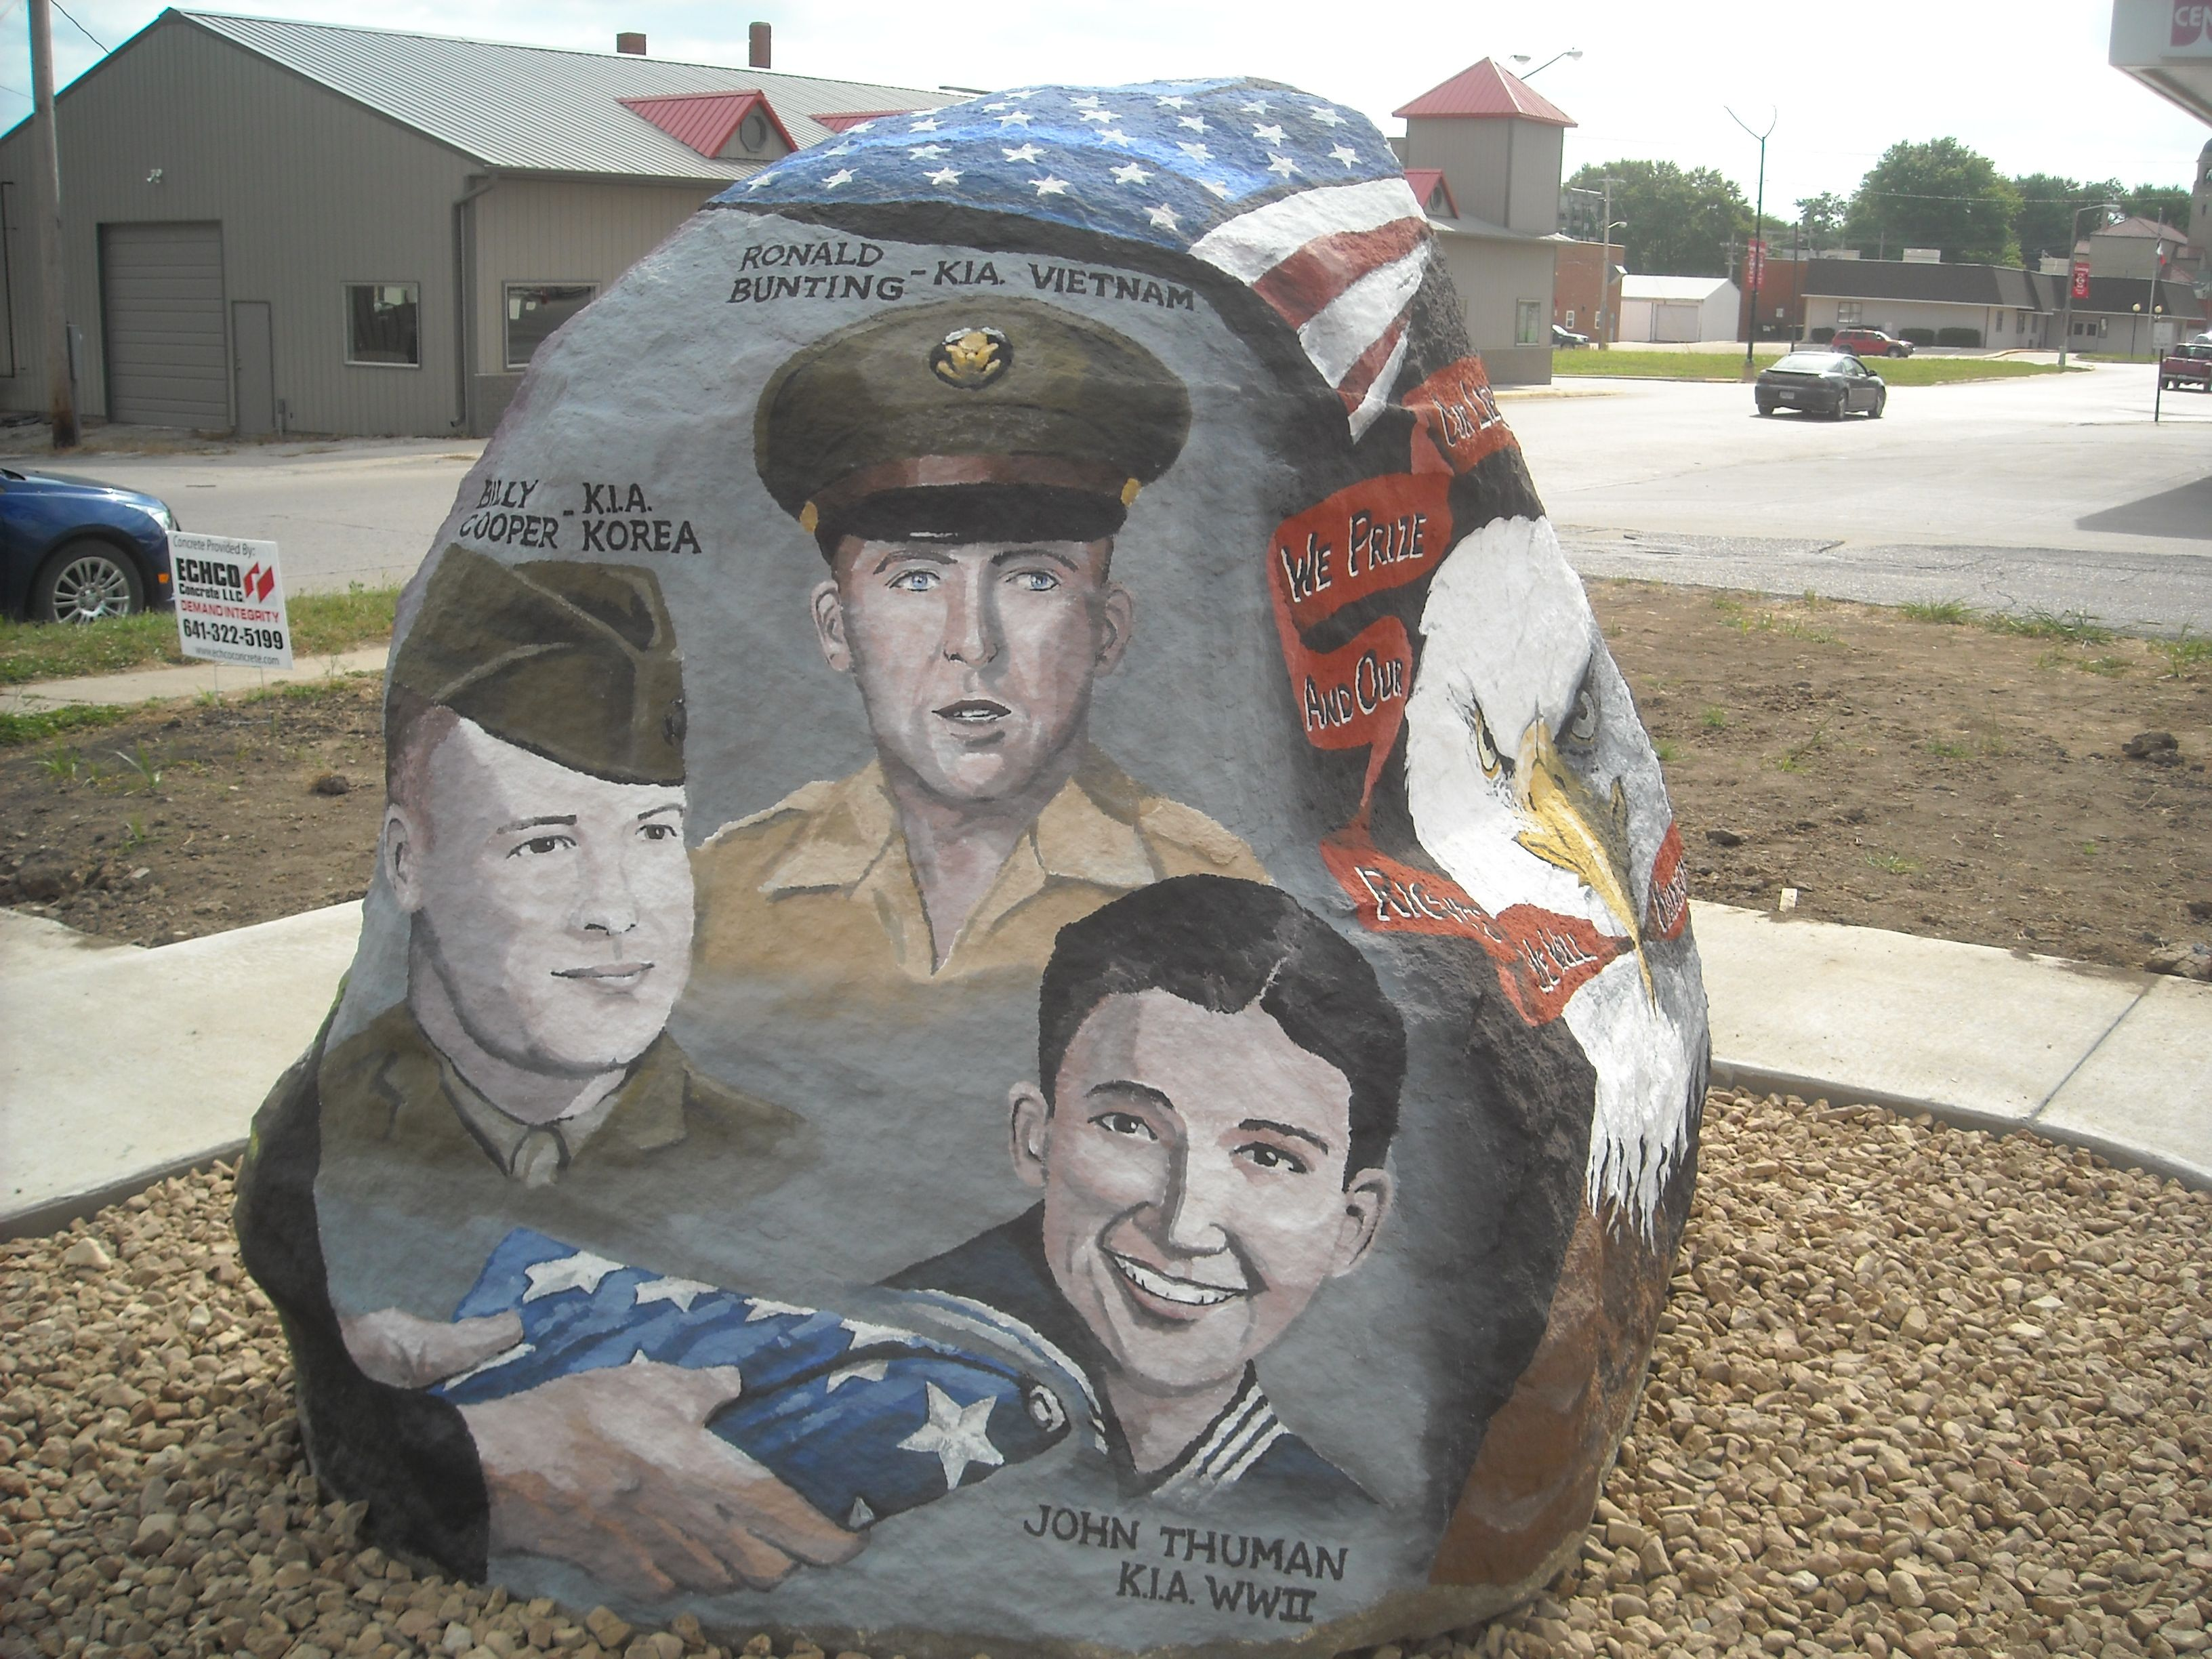 Freedom Rock Adams County Corning Iowa Just Painted 8 13 These Are Local Men Kia Painted On Rock Very Proud Iowa Farms Iowa Freedom